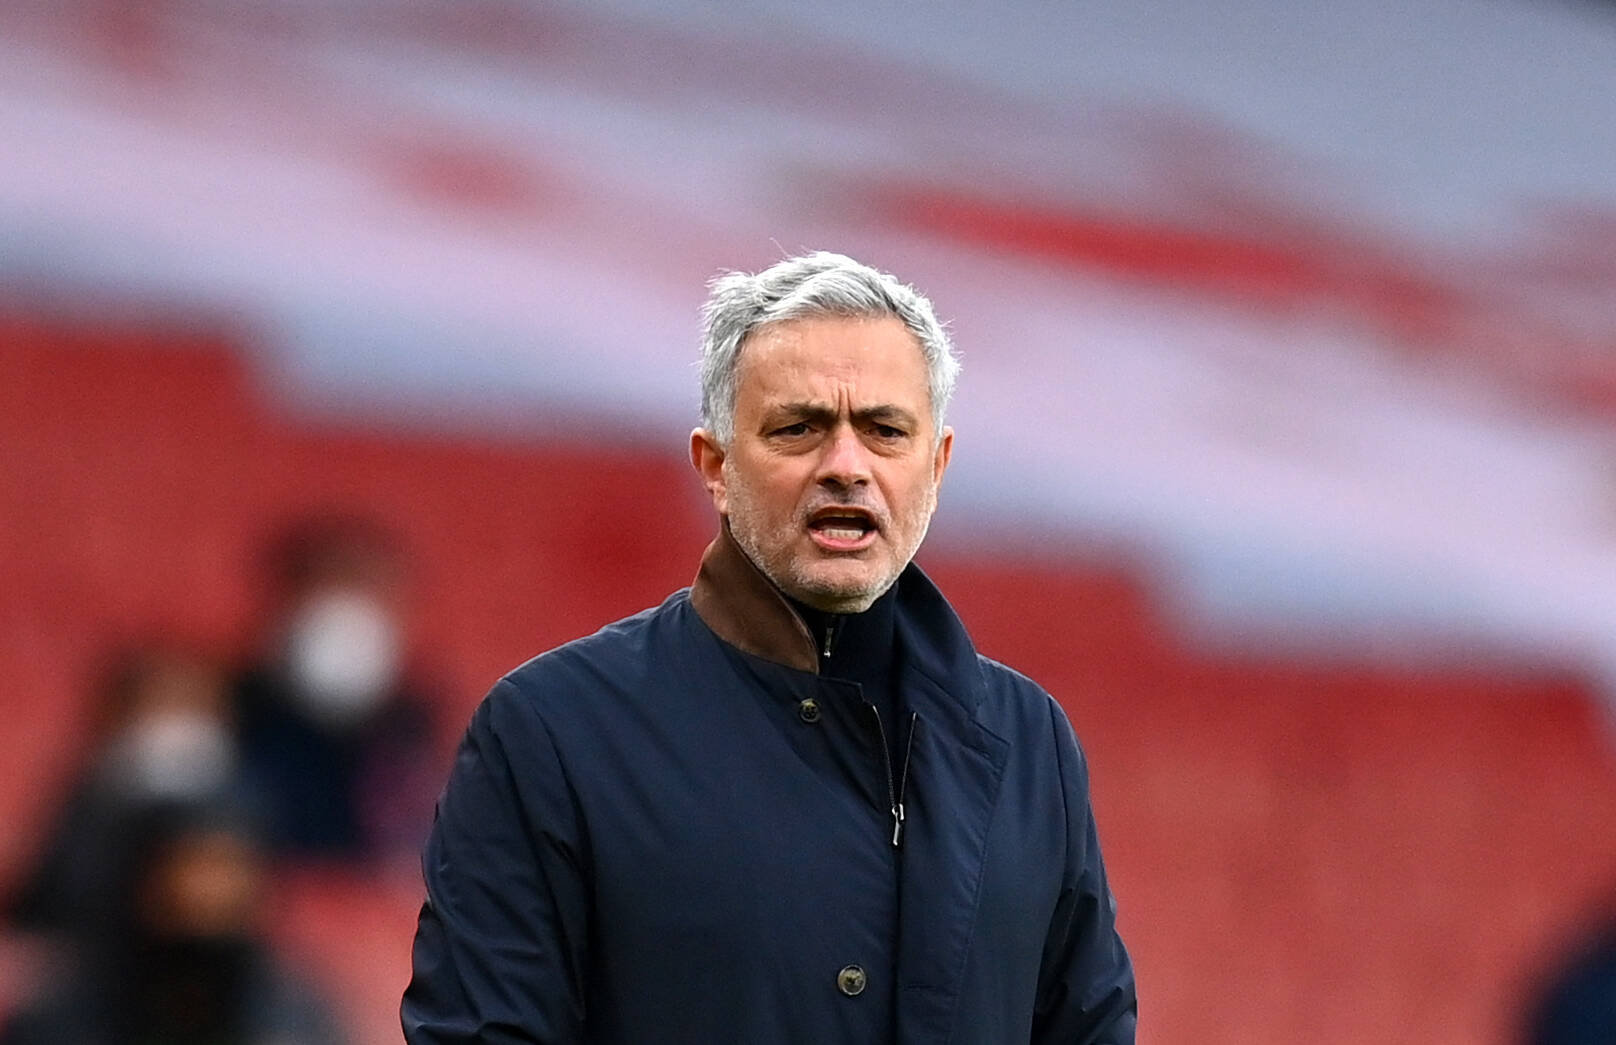 Jose Mourinho has been sacked by Tottenham Hotspur as their manager. (imago Images)